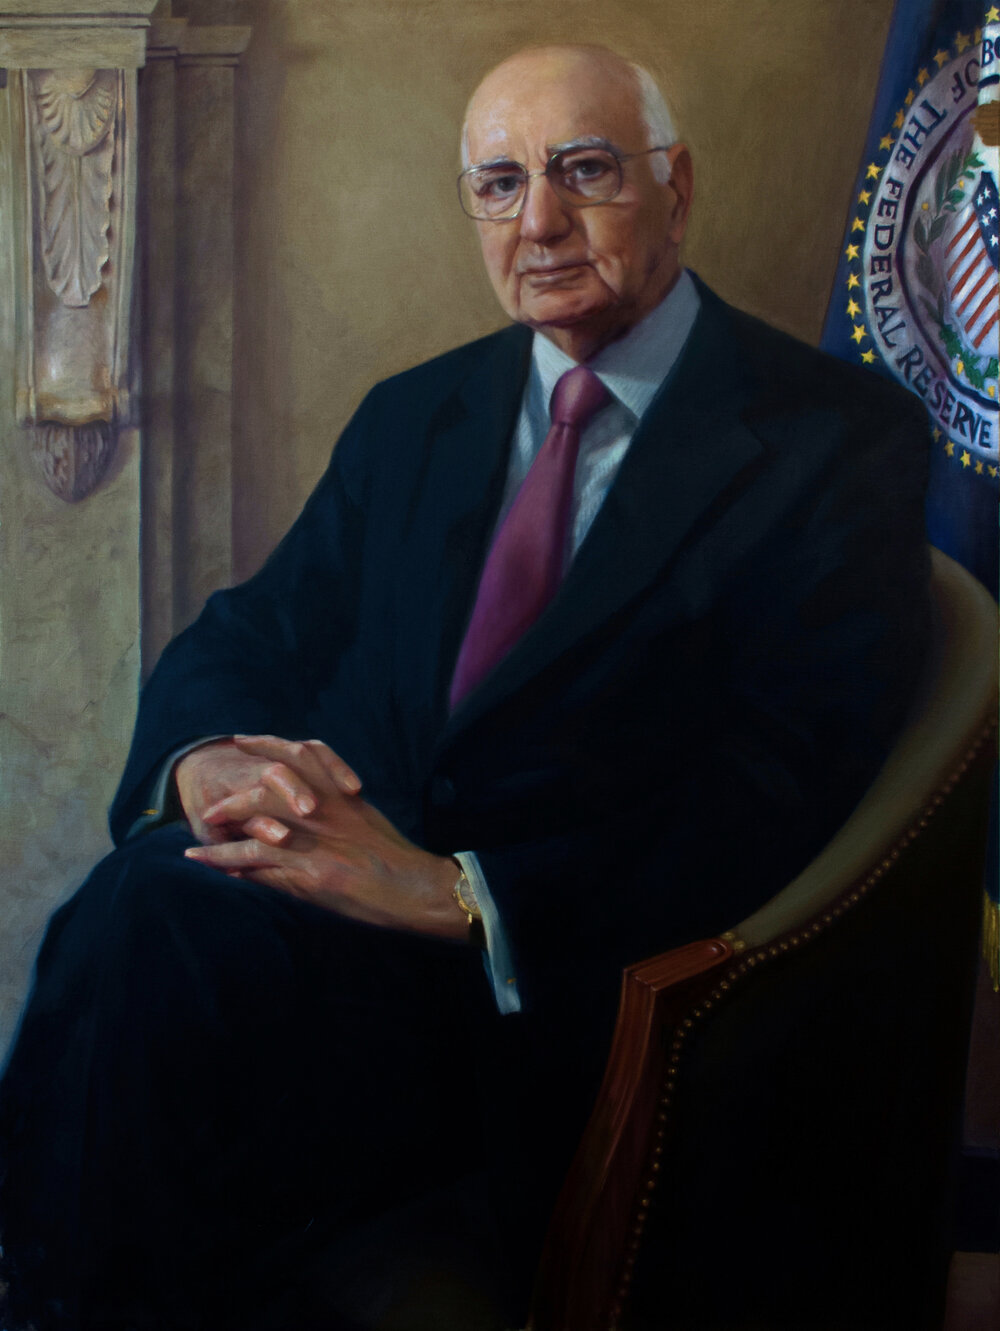 Portrait_of_Paul_A._Volcker_by_Luis_Alvarez_Roure.jpg